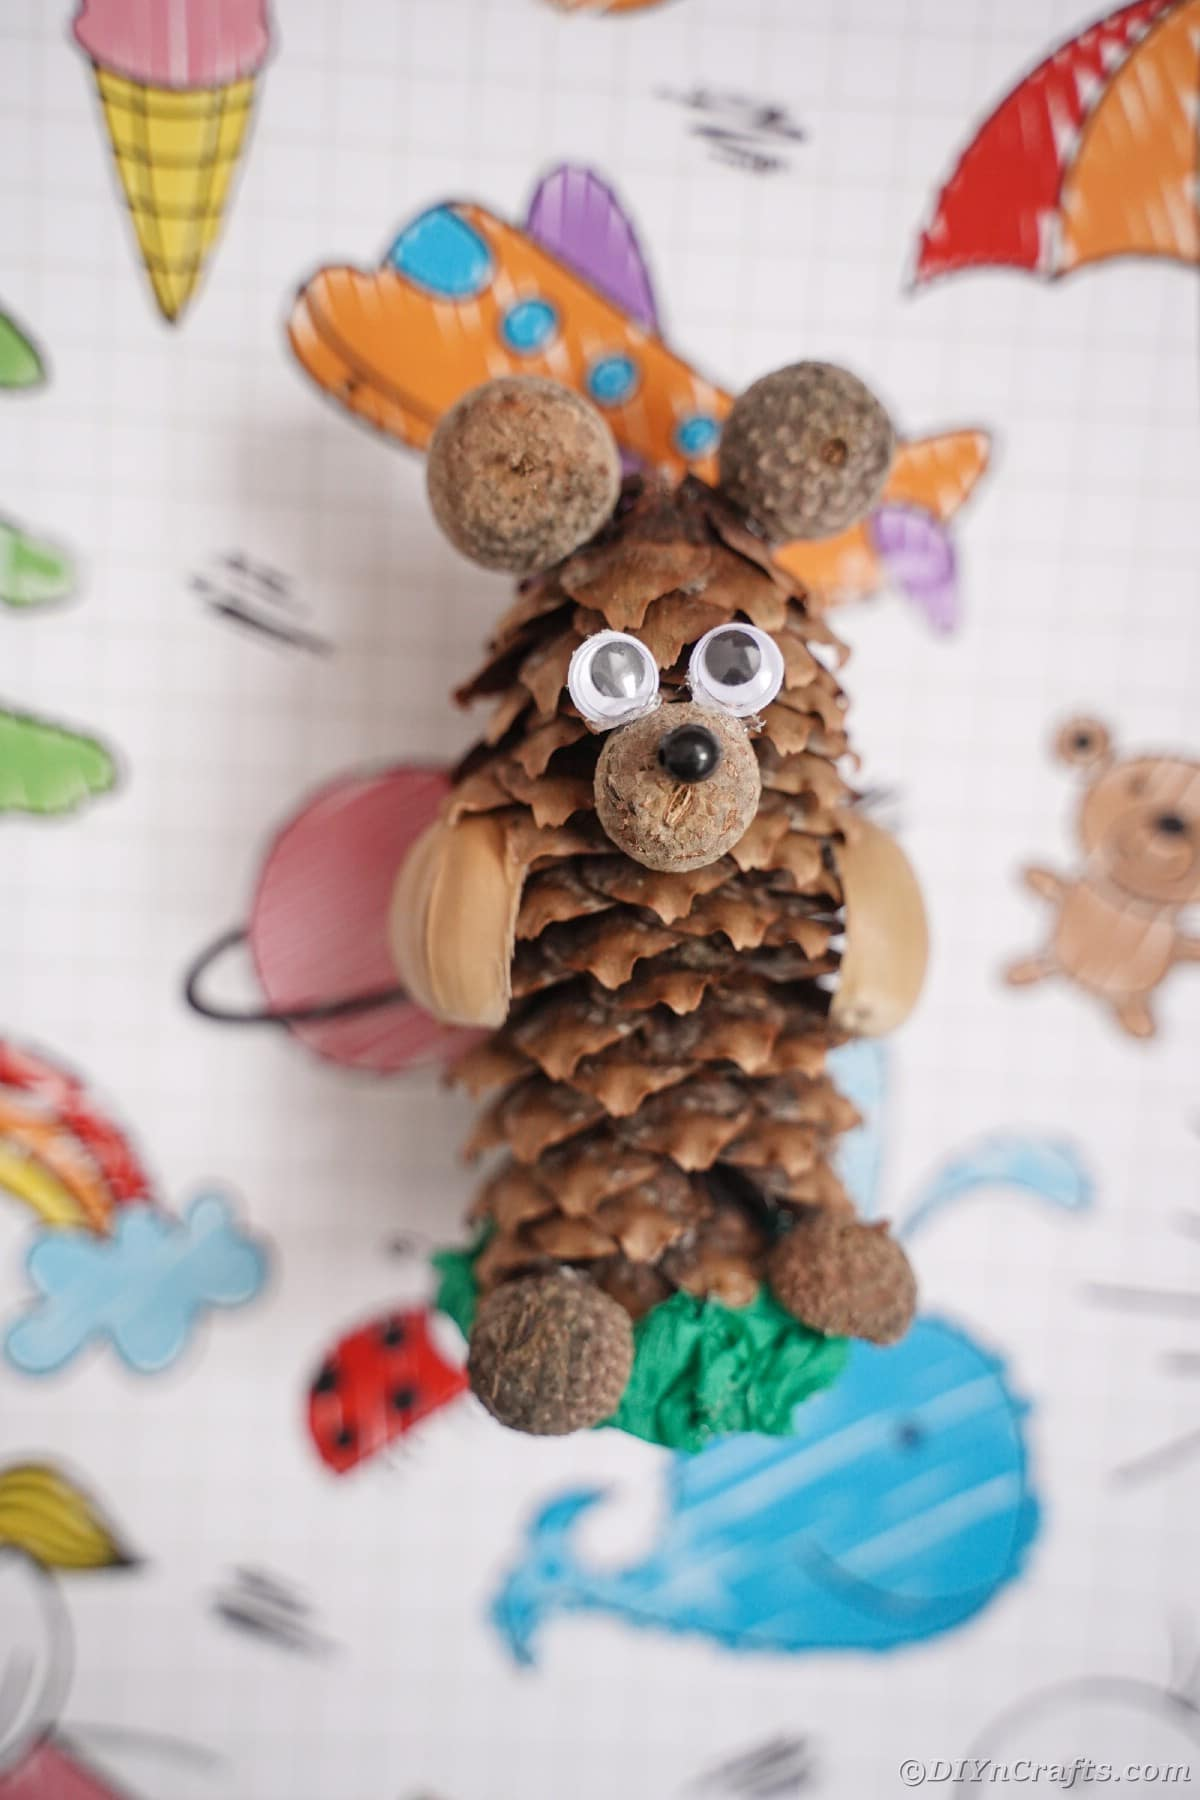 pinecone bear laying on colorful paper